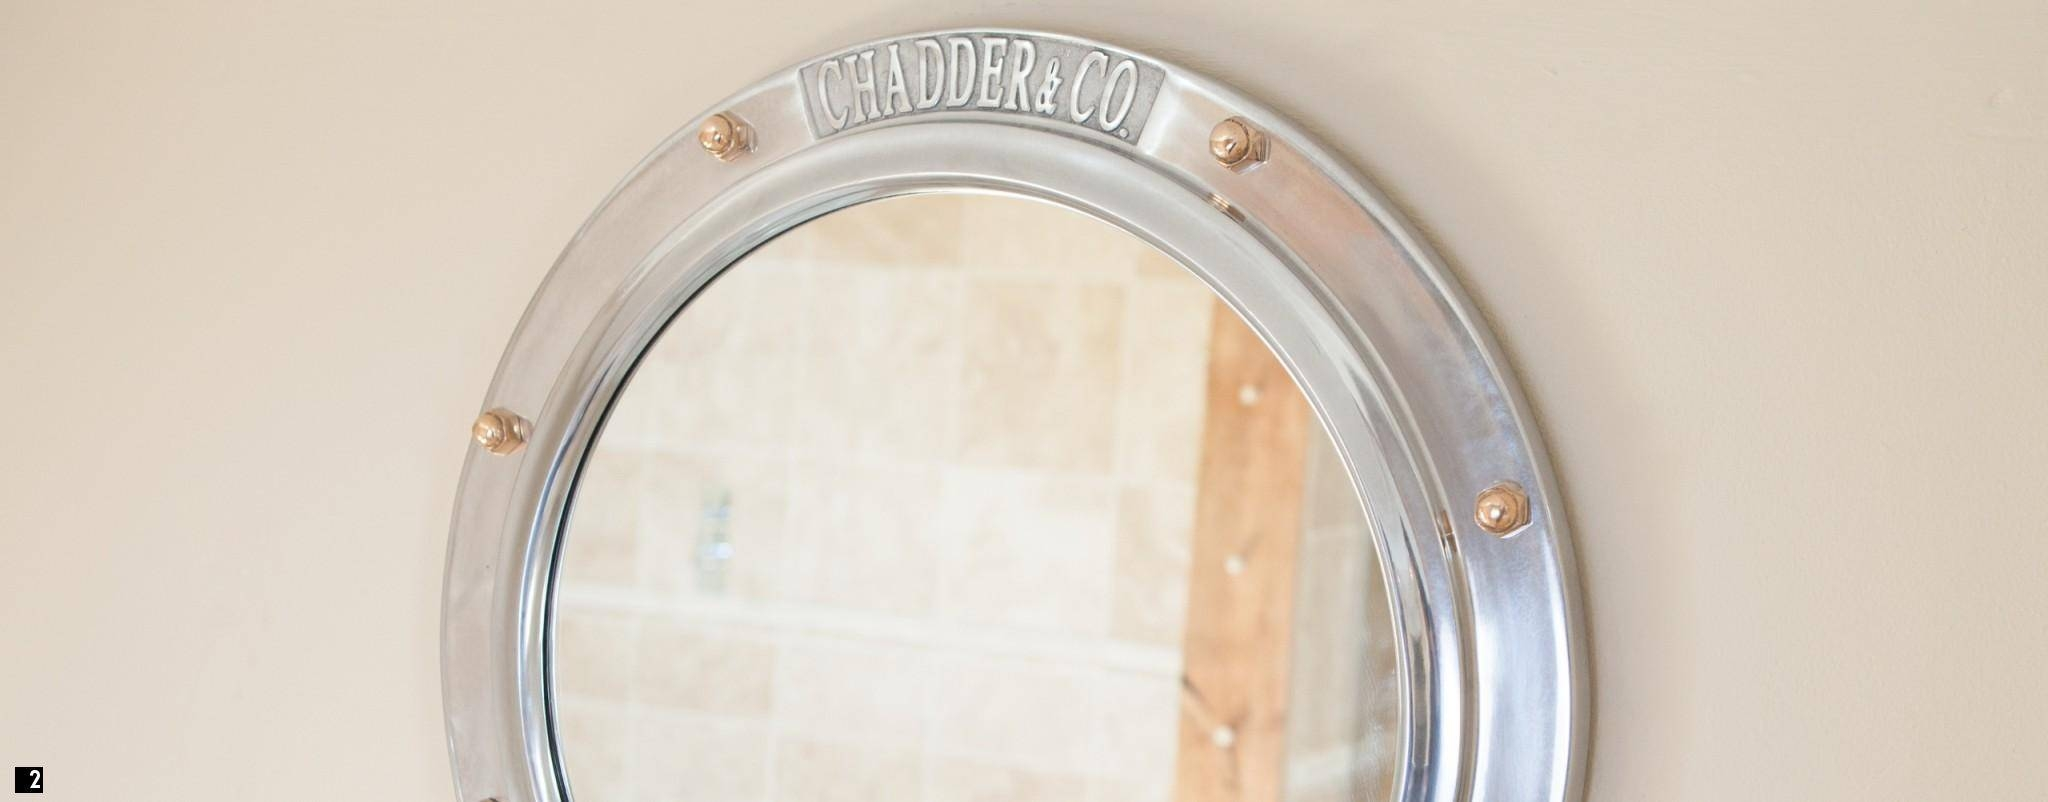 Porthole Mirrors | Product Categories | Chadder & Co. throughout Porthole Wall Mirrors (Image 18 of 25)